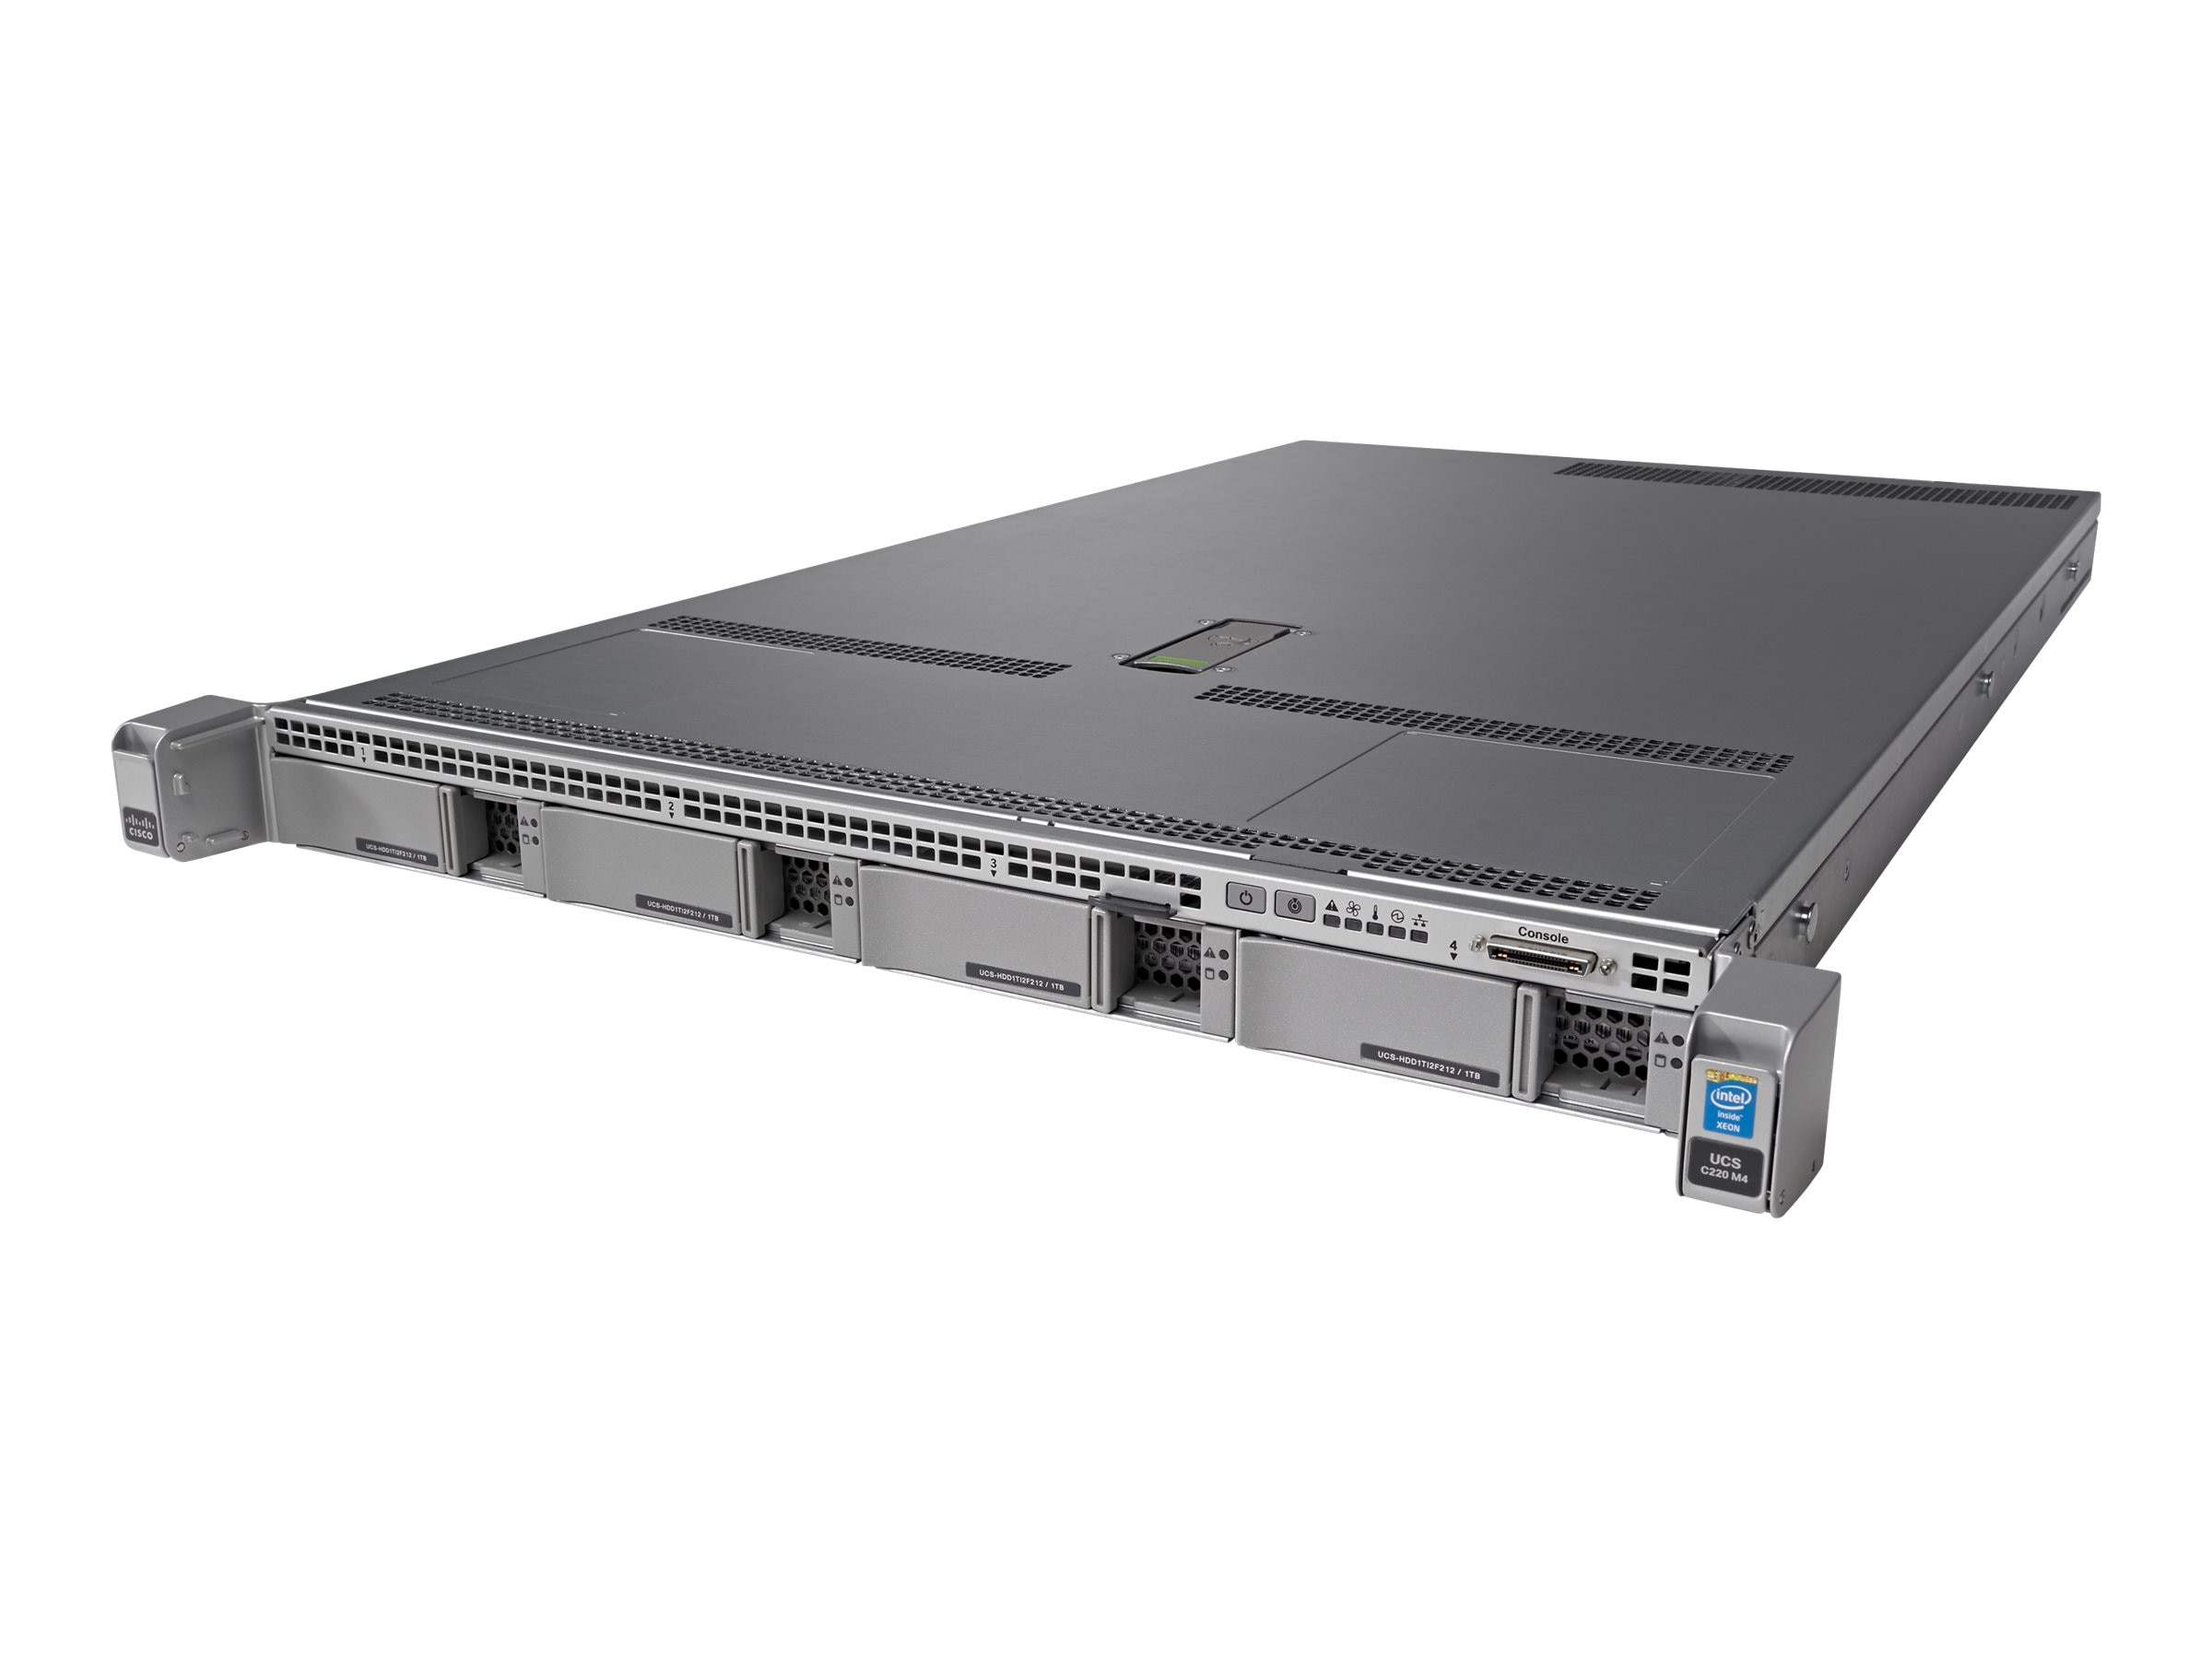 Cisco UCS SP Select C220 M4S Std 2 (2x)Xeon E5-2620, UCS-SPL-C220M4-S2, 20022813, Servers